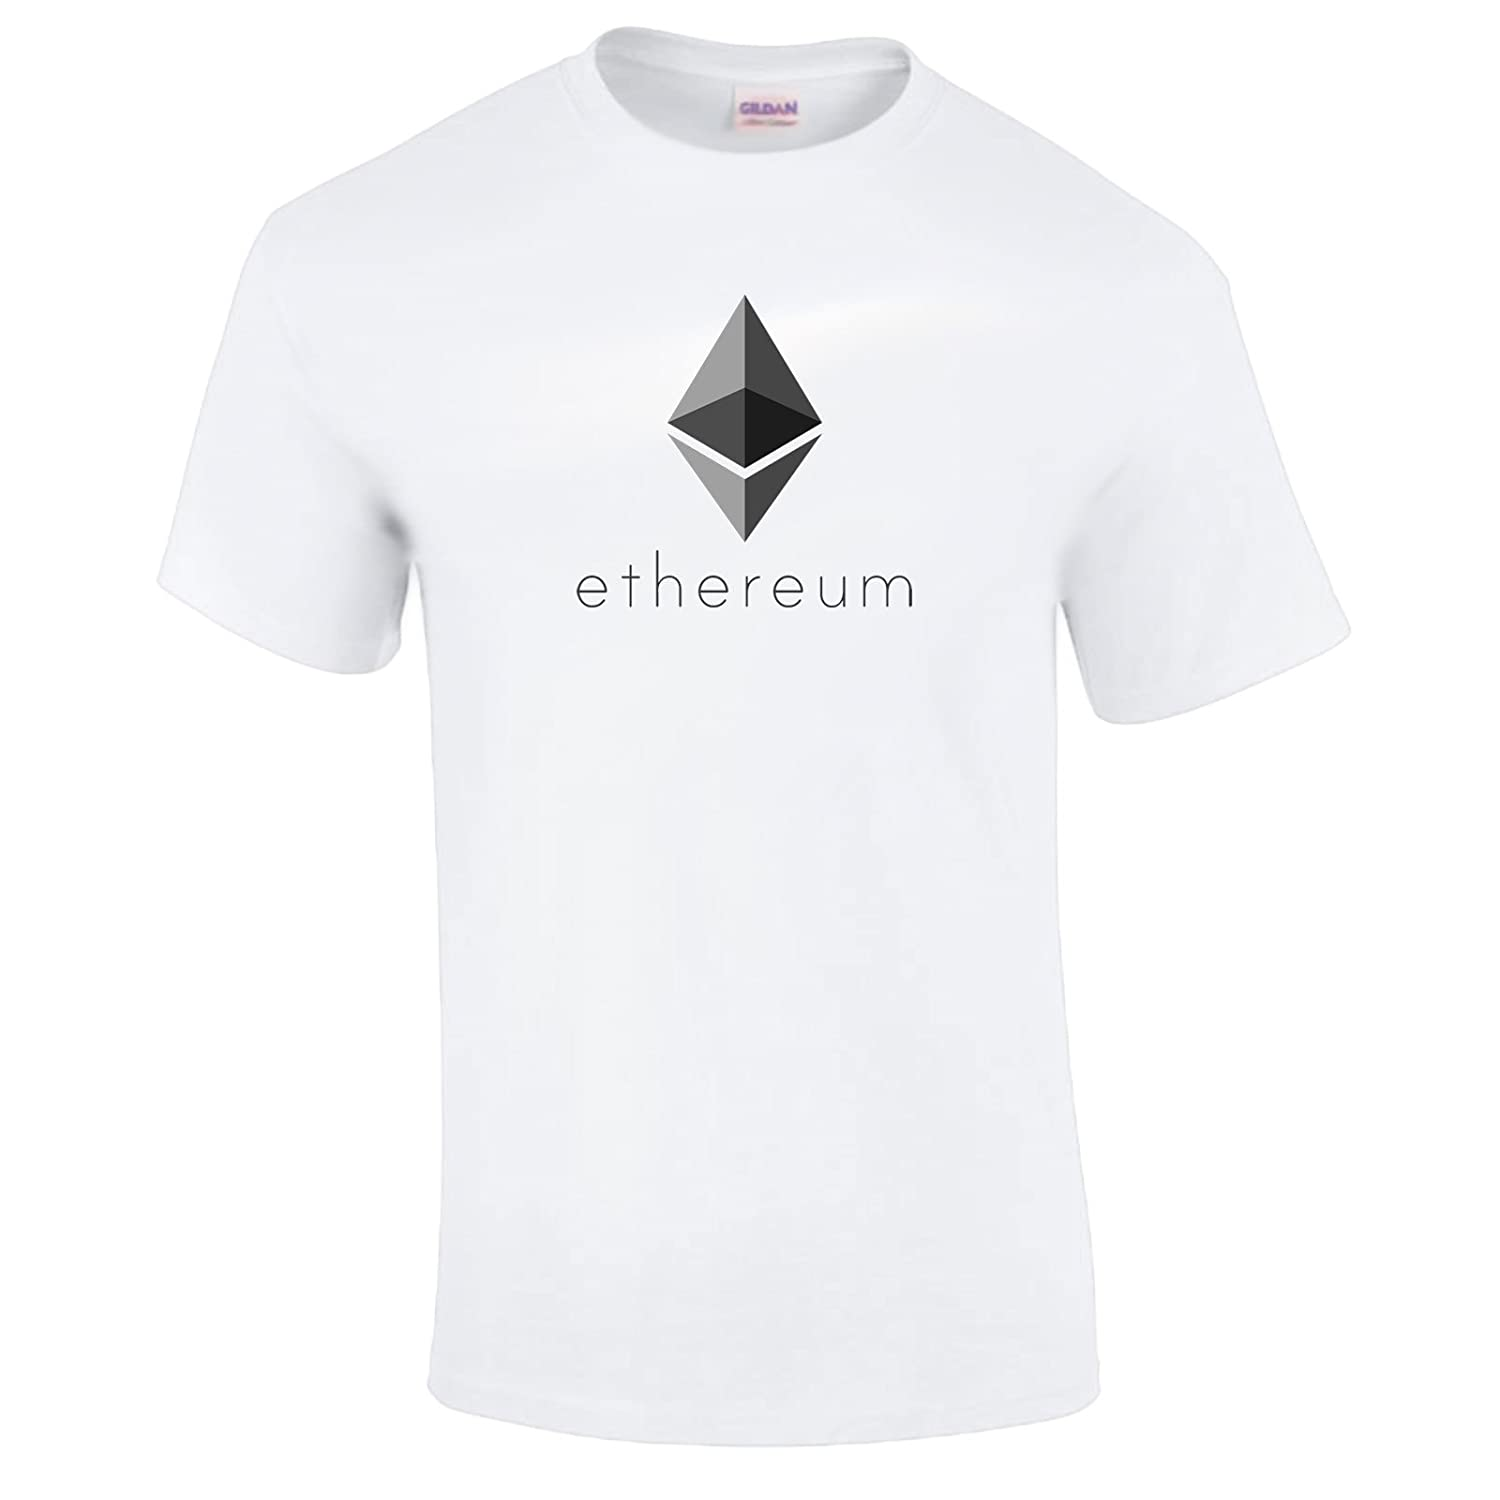 Indy Visuals Ethereum Cryptocurrency Premium T-Shirt ETH Money XRP Bitcoin  Ripple Iota S-5XL: Amazon.co.uk: Clothing